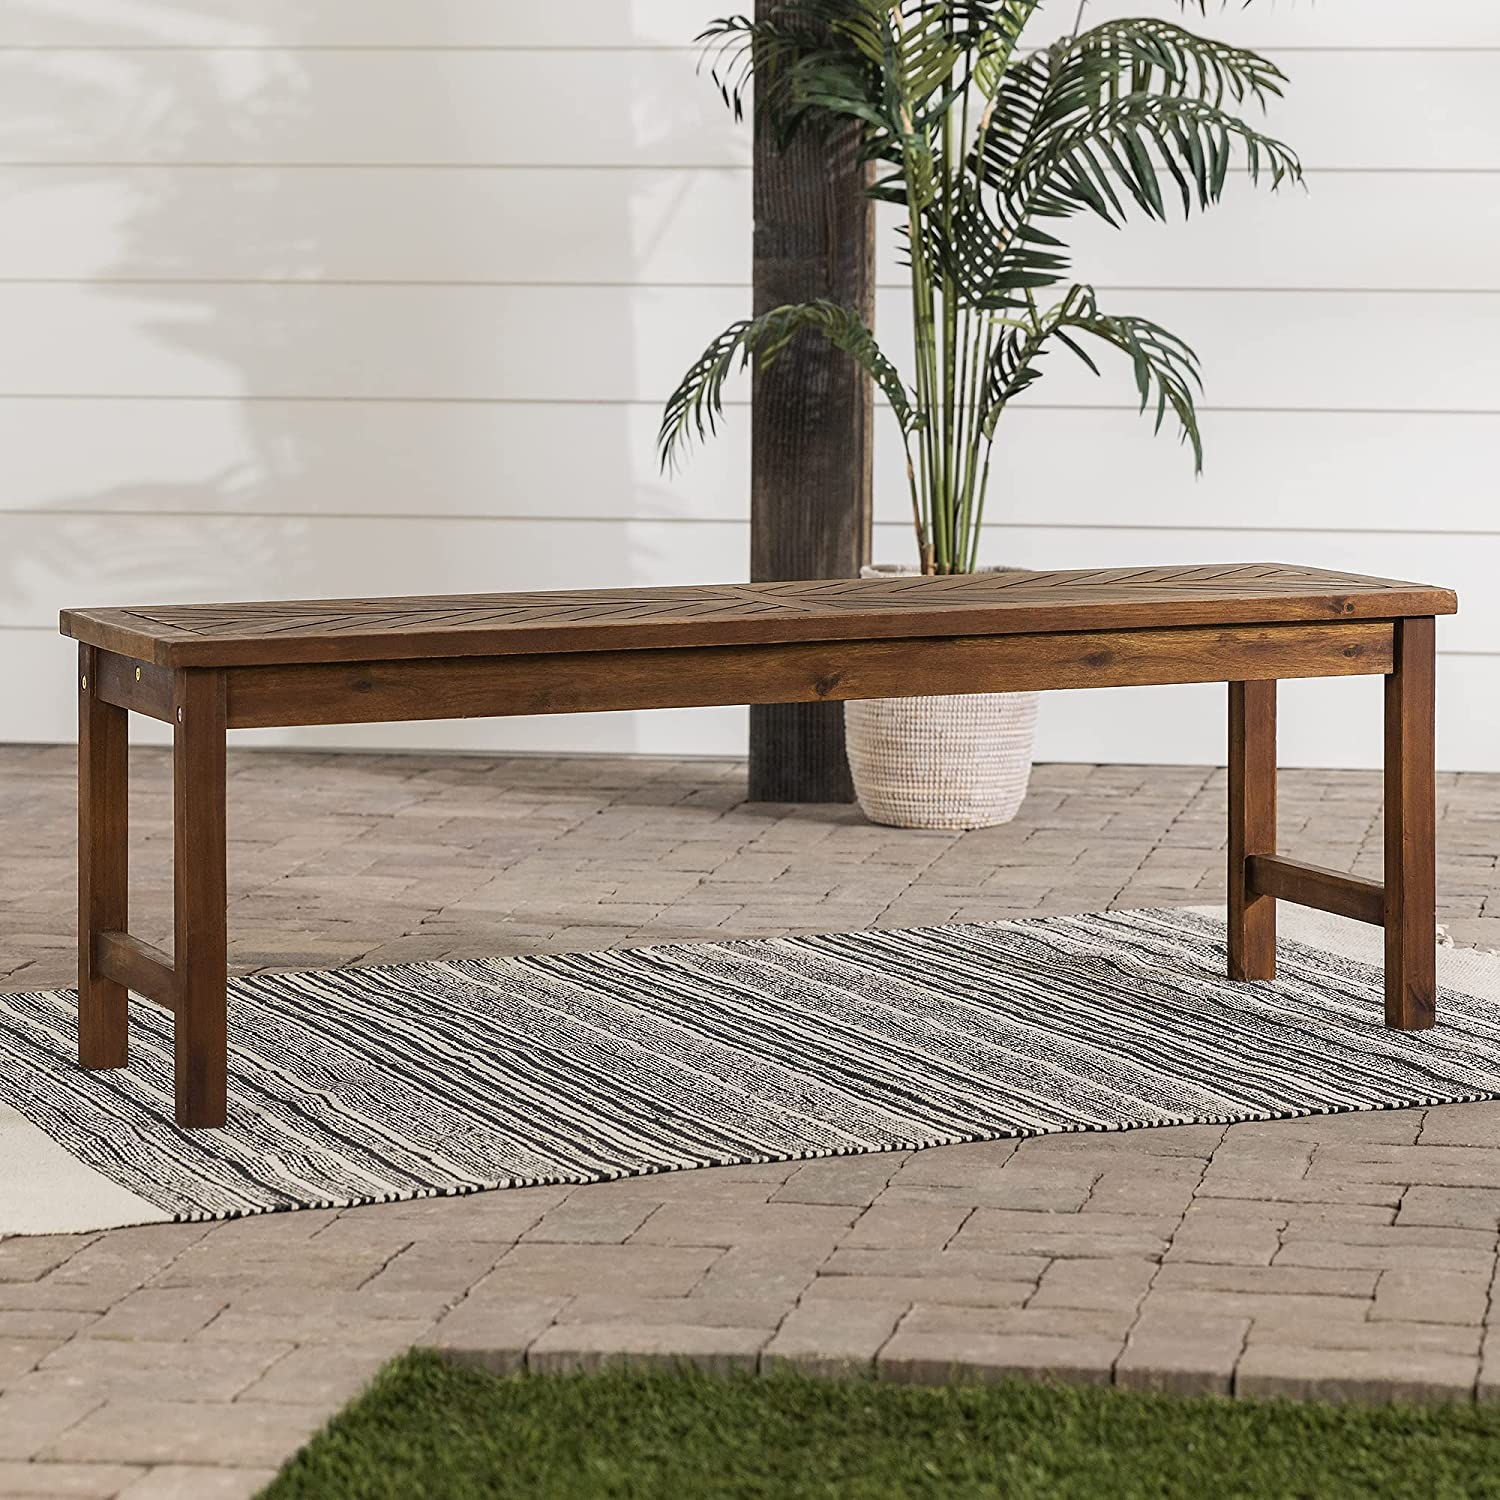 Walker Edison Furniture Company Challenge the lowest price 3 OFFer W Patio Person Outdoor Chevron